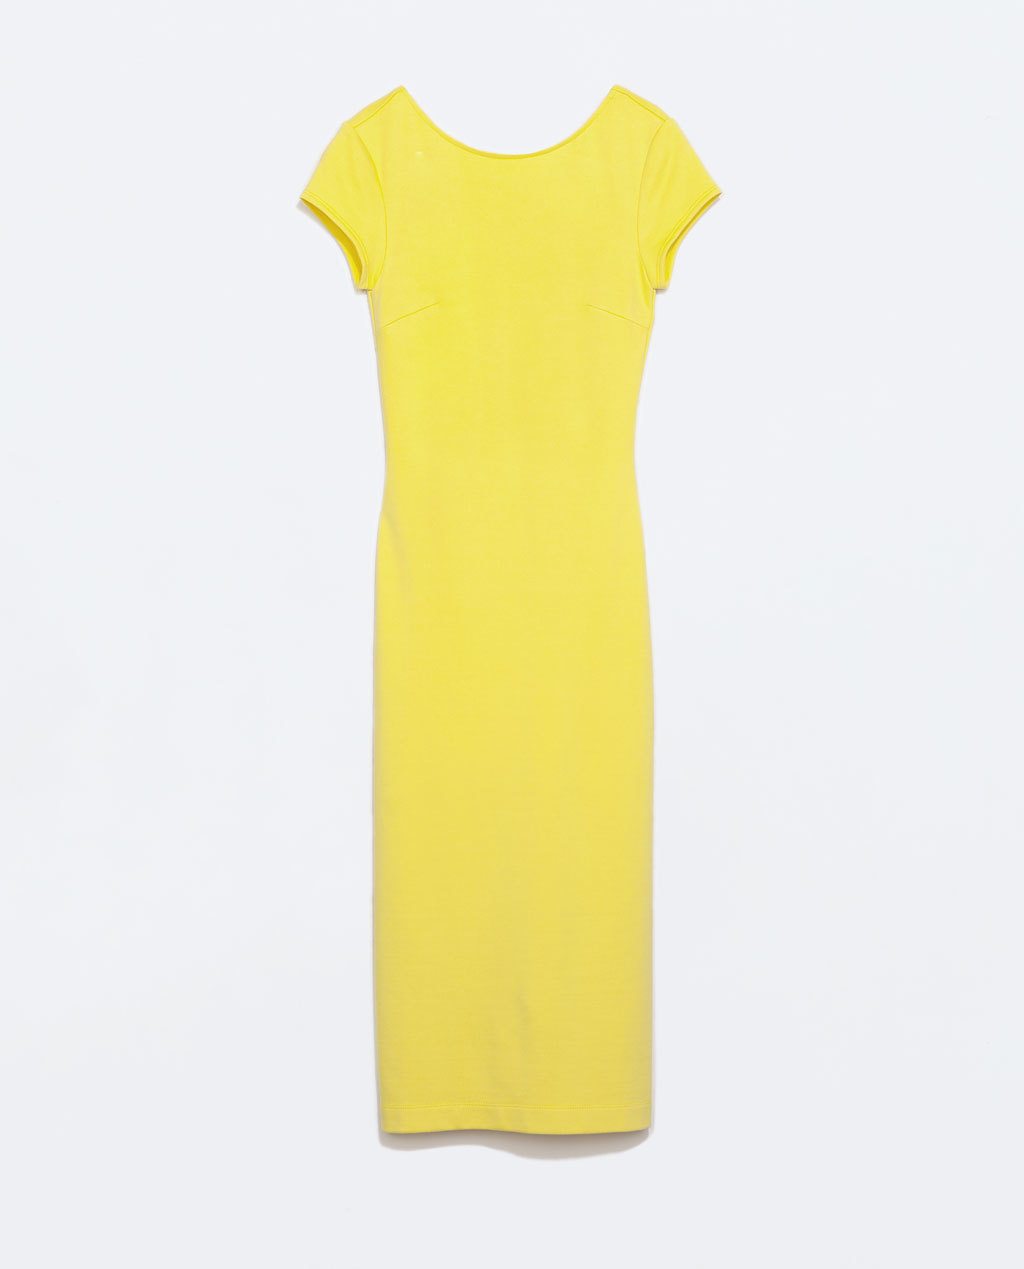 Long Shift Dress - style: shift; length: calf length; neckline: slash/boat neckline; sleeve style: capped; pattern: plain; predominant colour: yellow; occasions: casual, evening, creative work; fit: body skimming; fibres: viscose/rayon - stretch; sleeve length: sleeveless; texture group: jersey - clingy; pattern type: fabric; trends: hot brights; season: s/s 2014